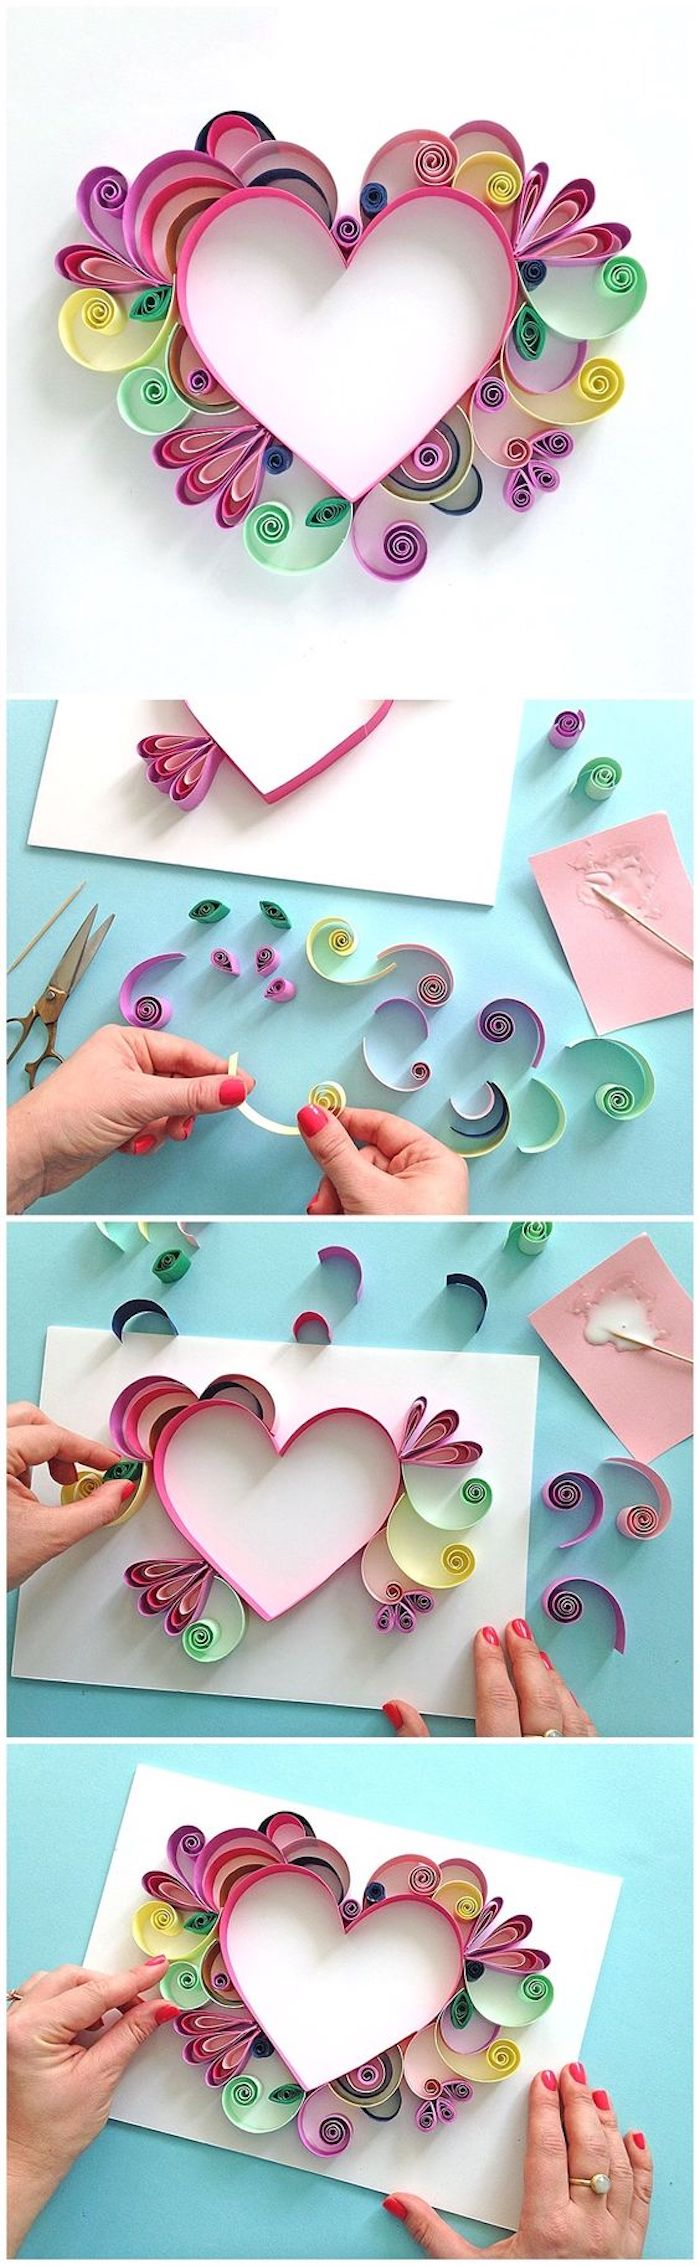 paper quilling, colourful heart, made of paper, easy crafts for toddlers, step by step, diy tutorial